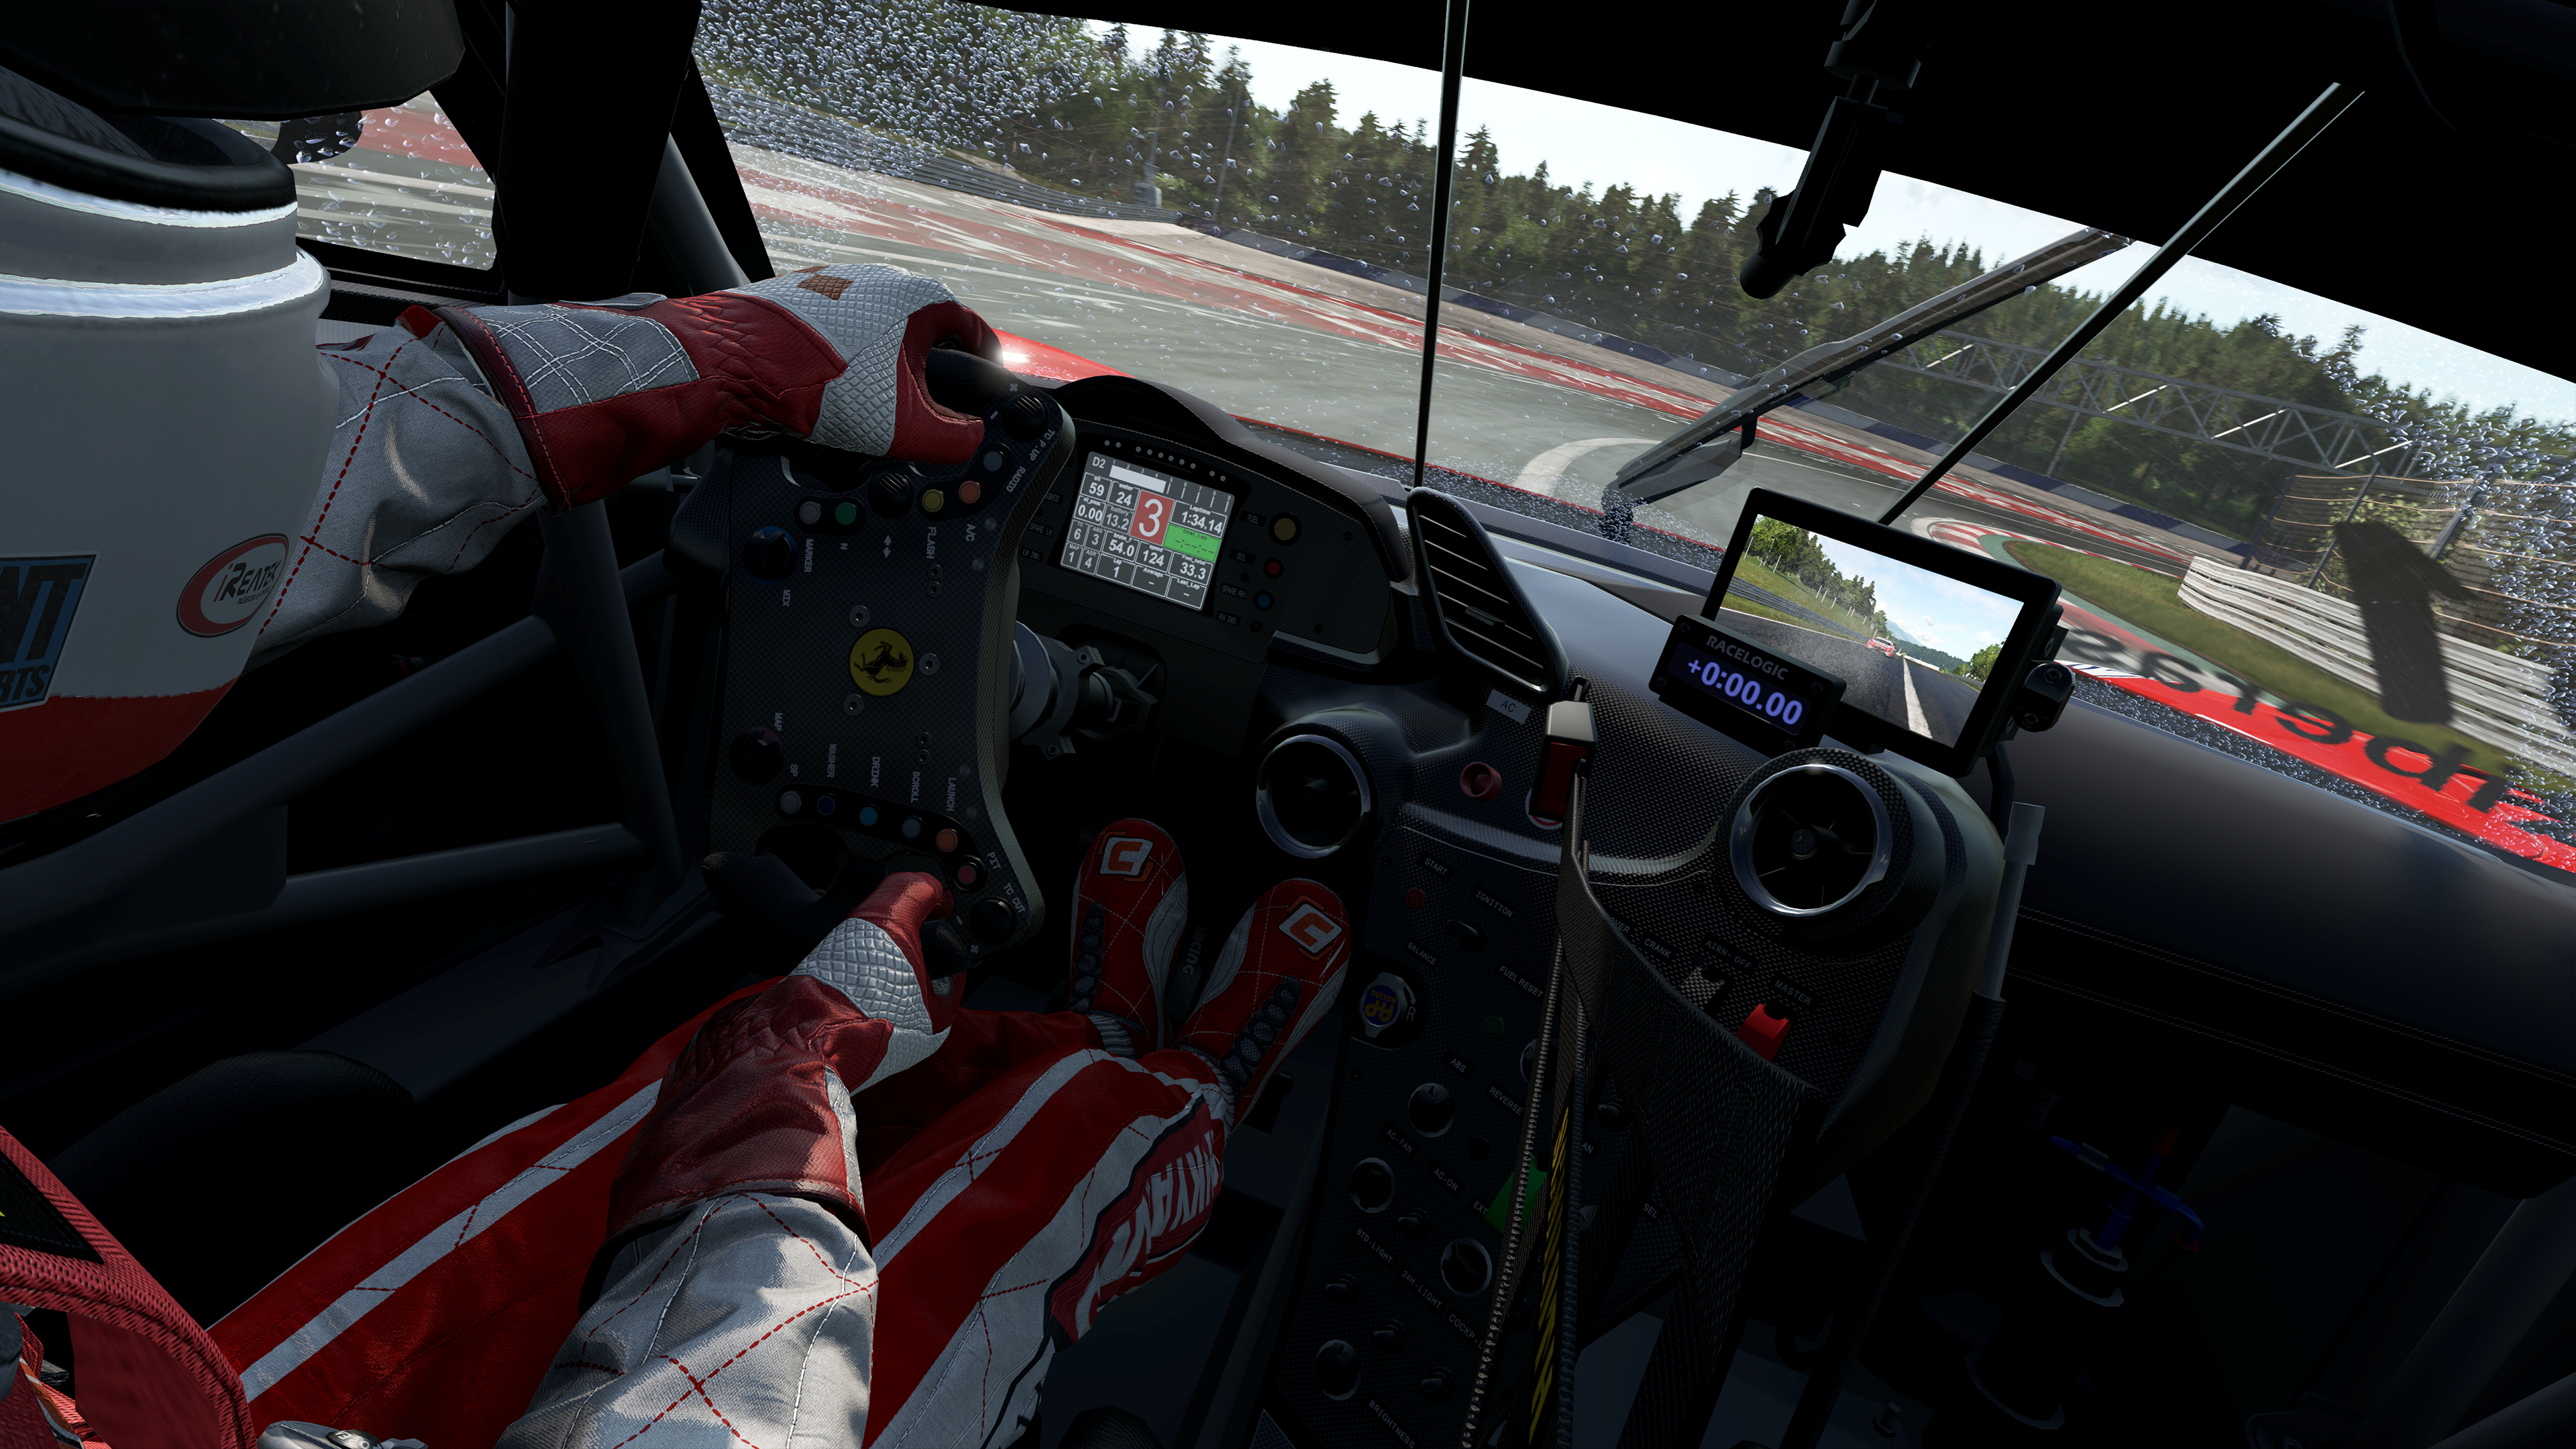 Play Inside View Of A Ferrari Racecar And Driver On Racing Track In The Rain